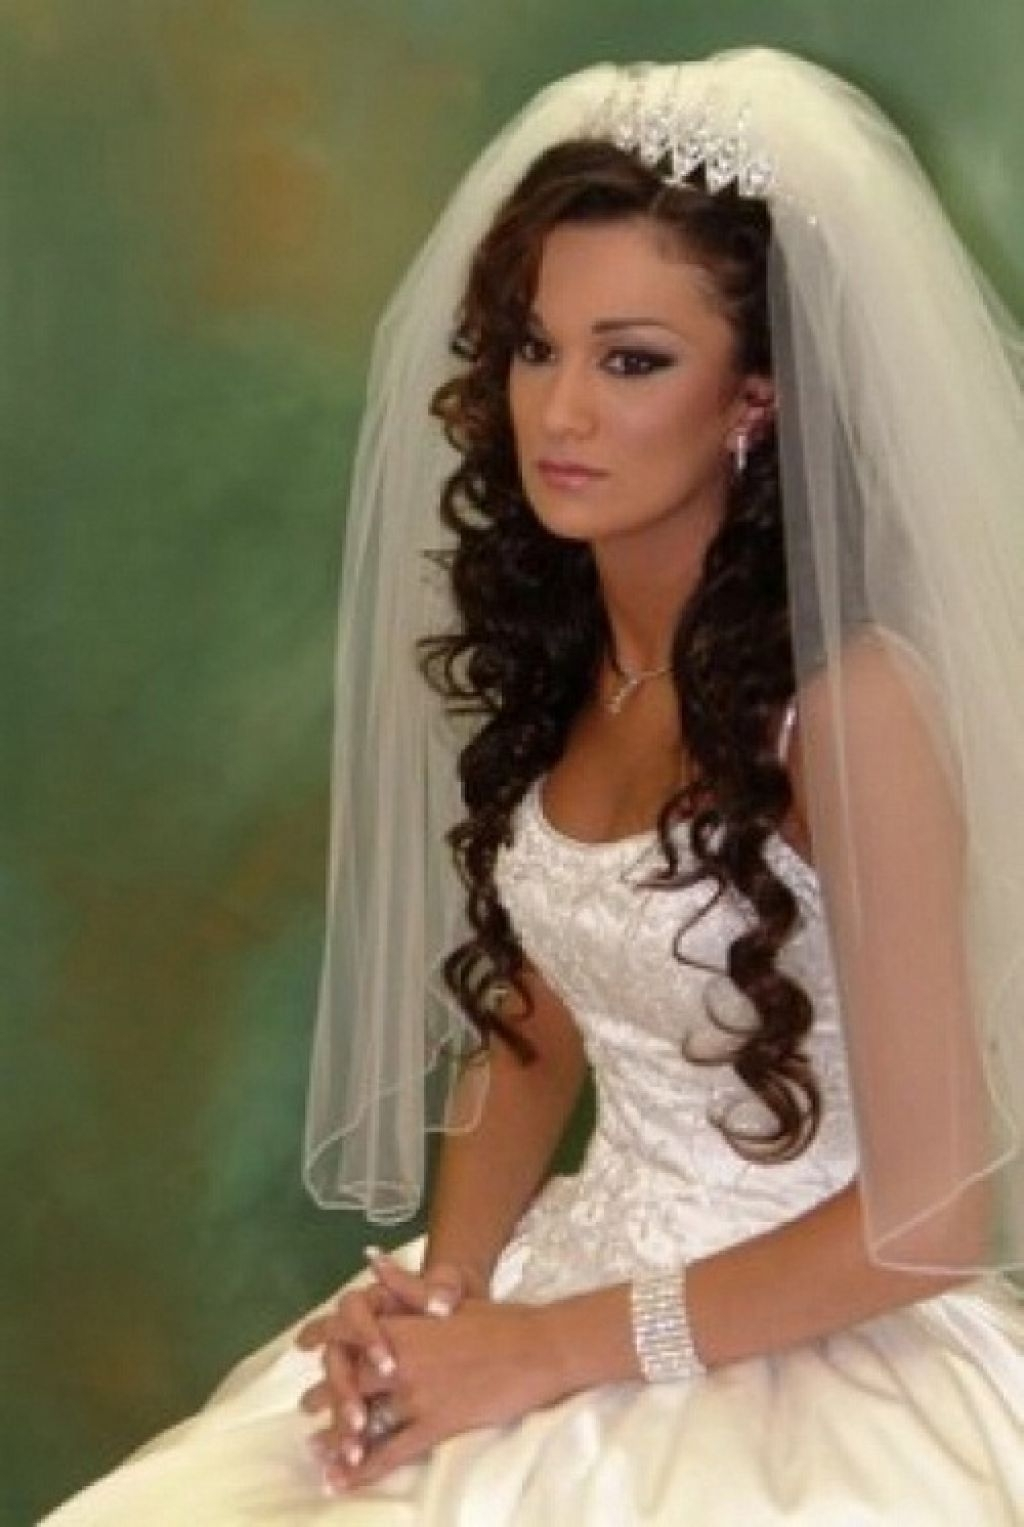 Wedding Hairstyles For Short Hair With Veil – Hairstyle For Women & Man With Regard To Fashionable Wedding Hairstyles For Long Hair Down With Tiara (View 14 of 15)